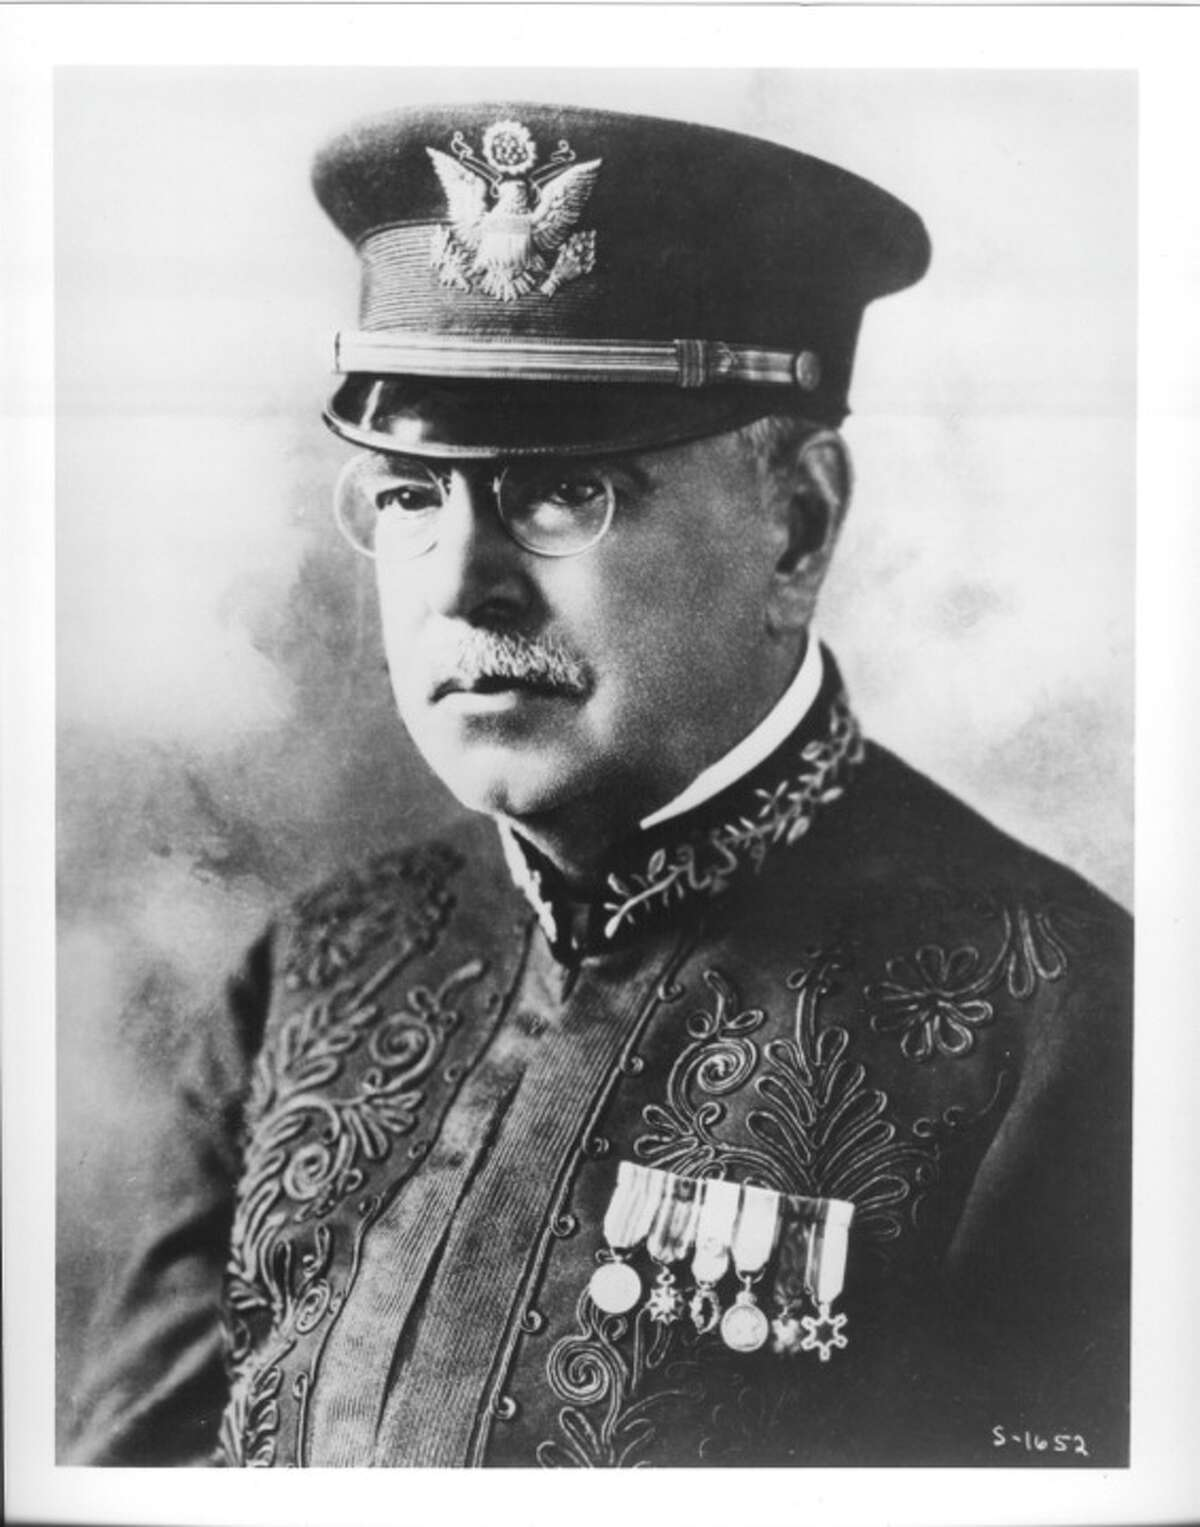 John Philip Sousa is mainly known for his marches, but he also wrote operettas and other works.